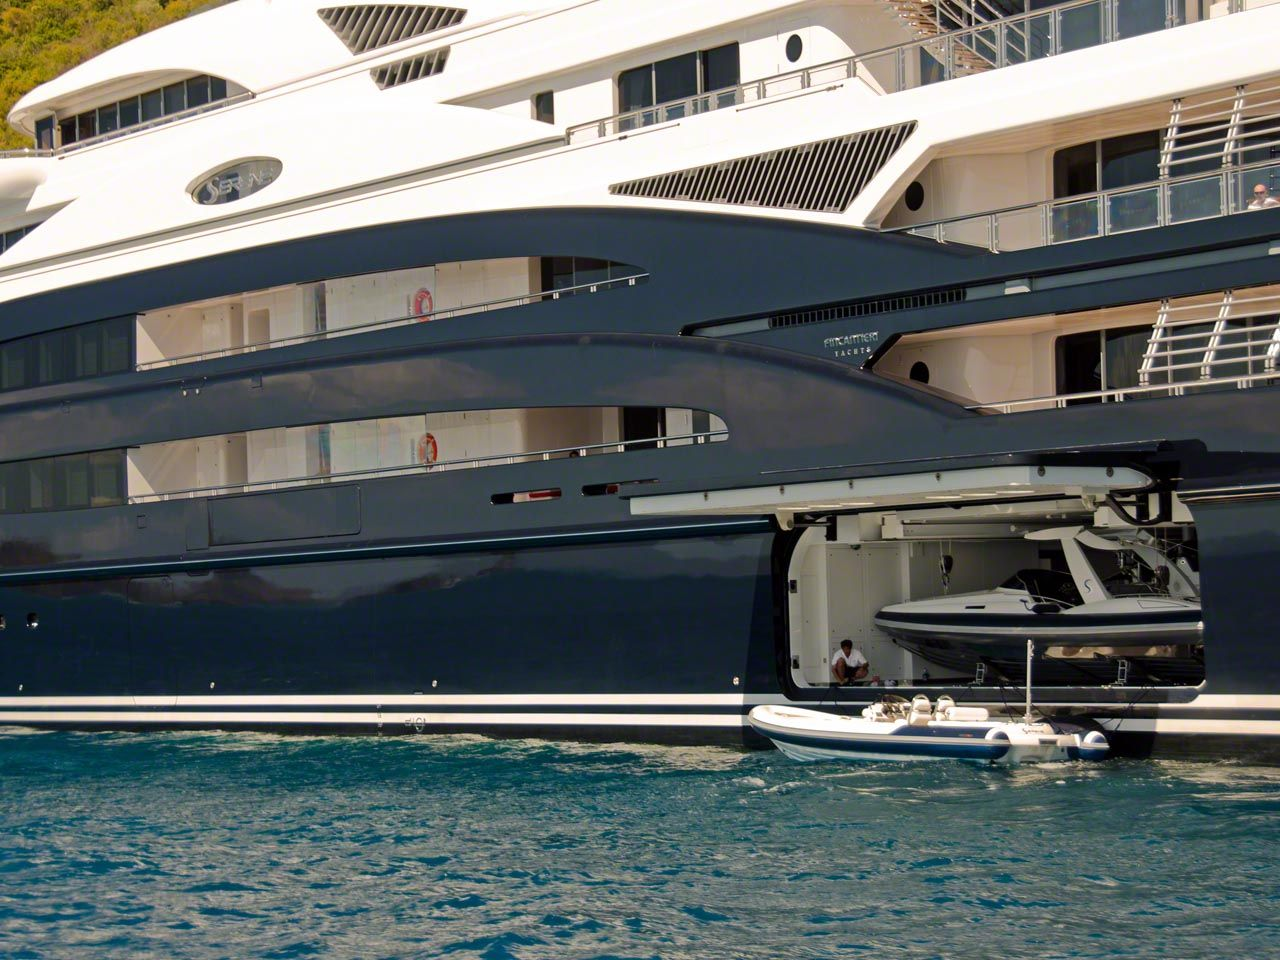 Serene Yacht The Toy Garage Is Opened On Serene And The Megayacht Is Taller Than My Yacht Boat Yacht Yatch Boat